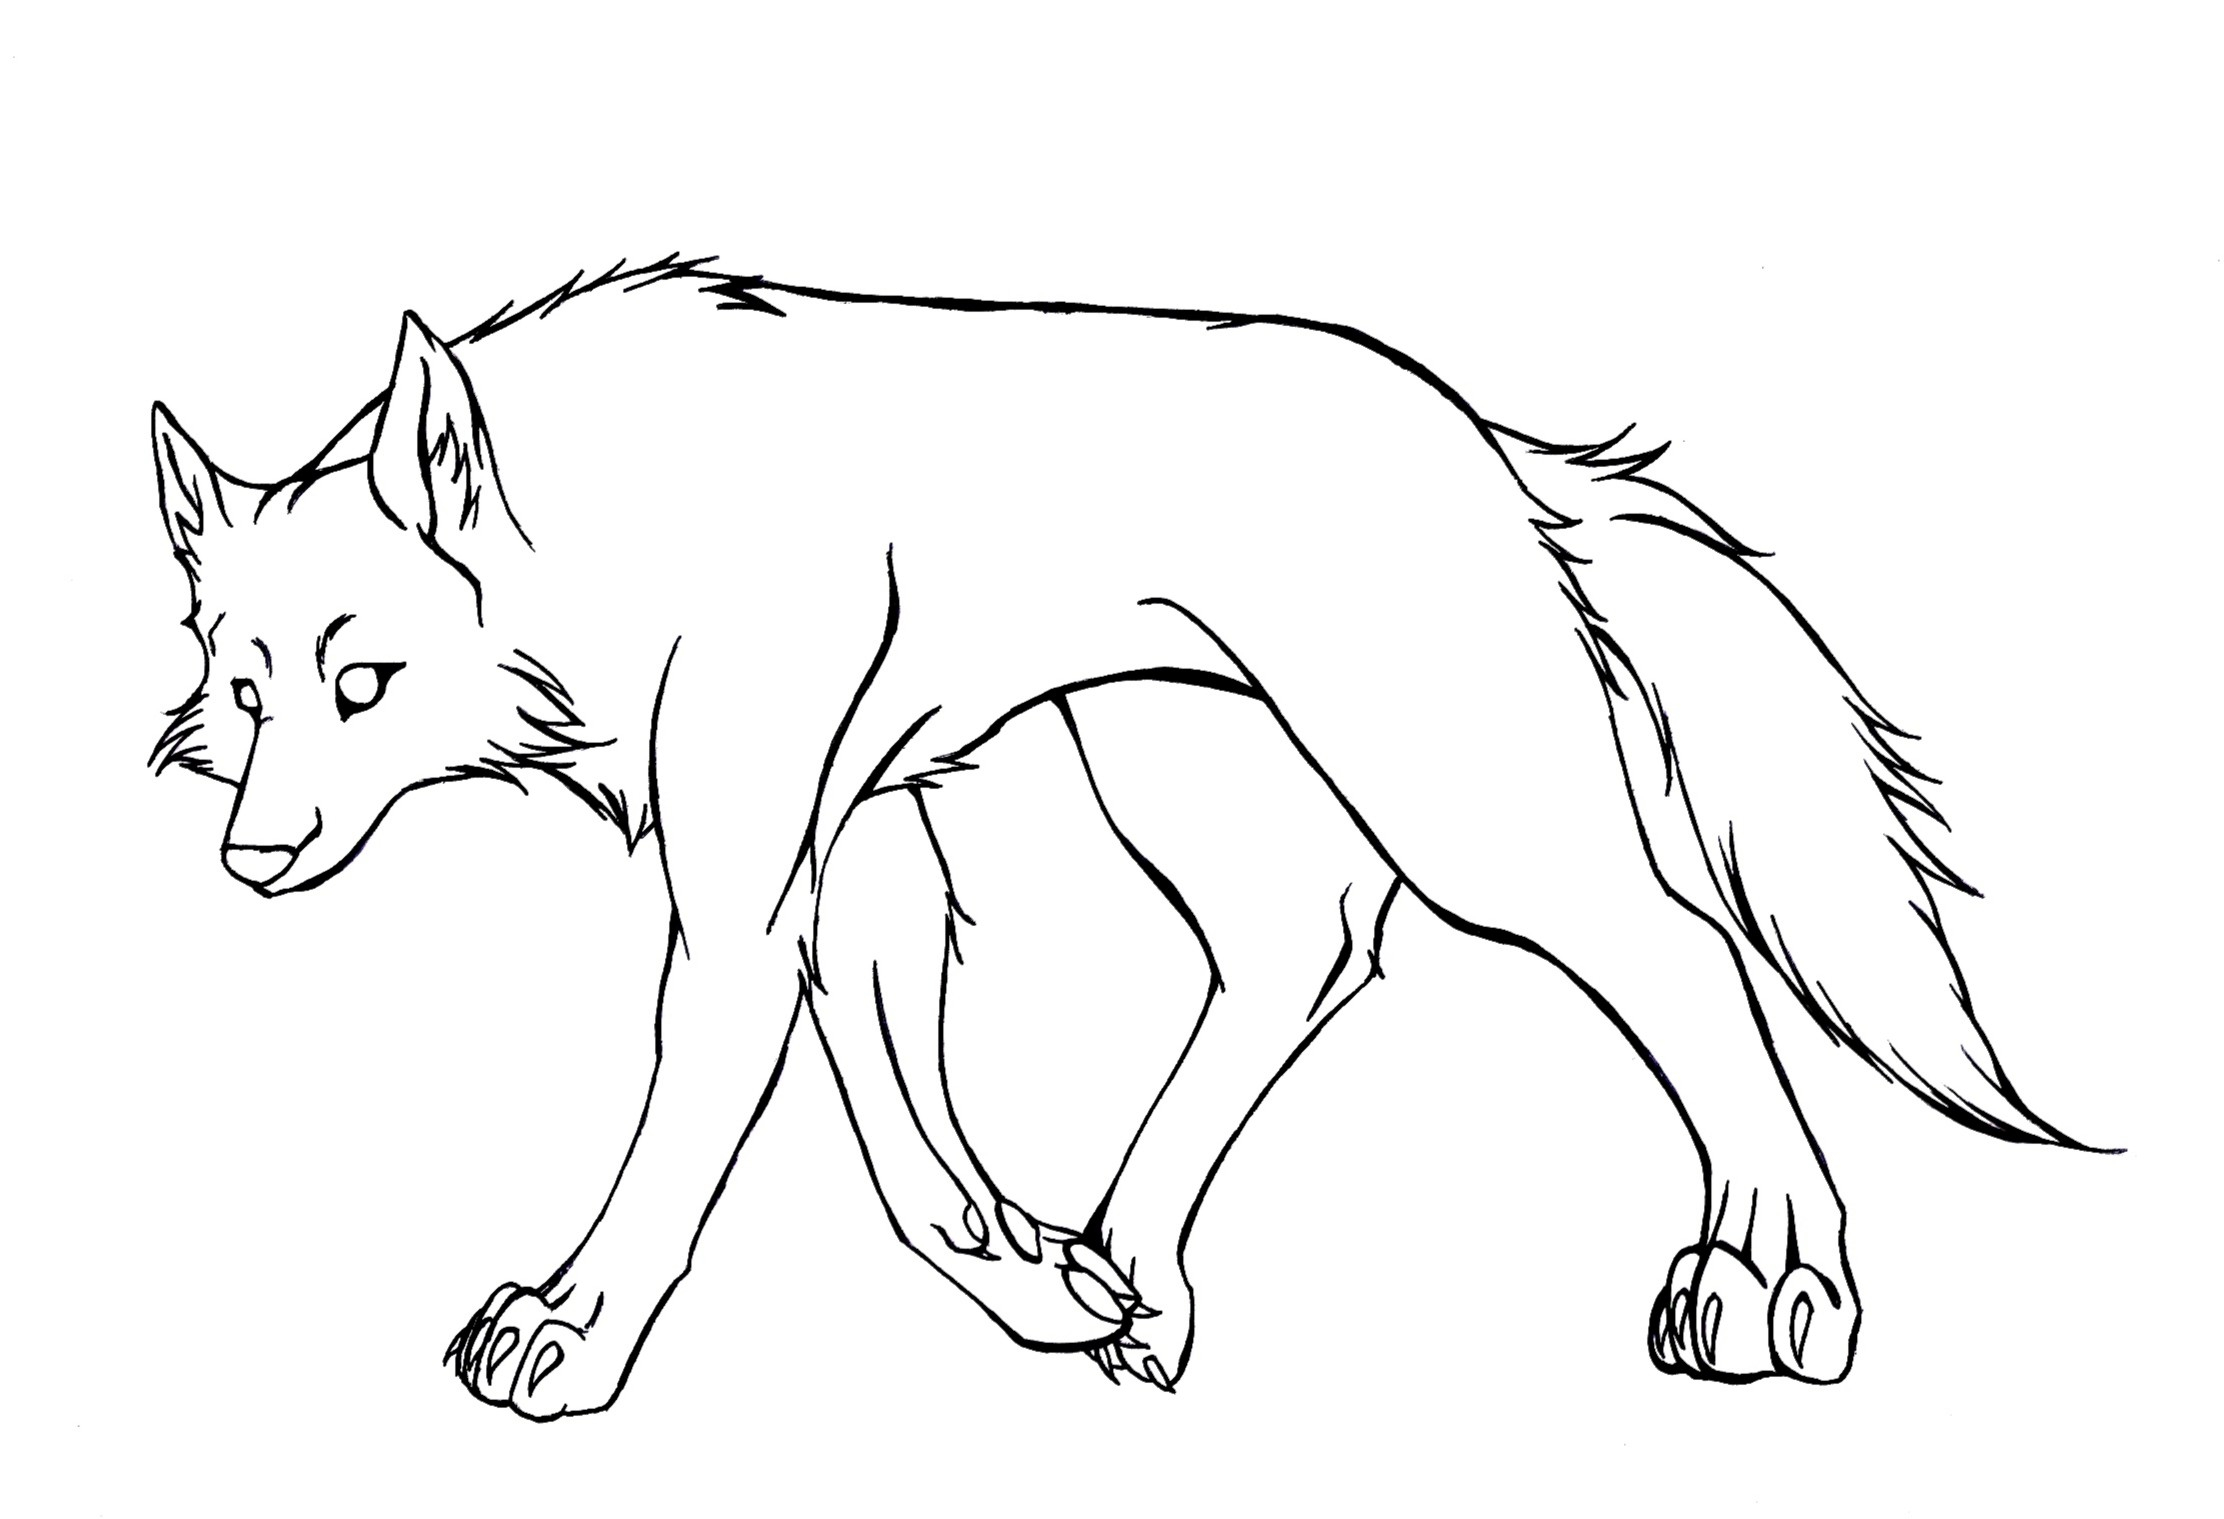 2224x1519 Cartoon Wolf Drawing Wolf Lineart By Tcs1992 What I